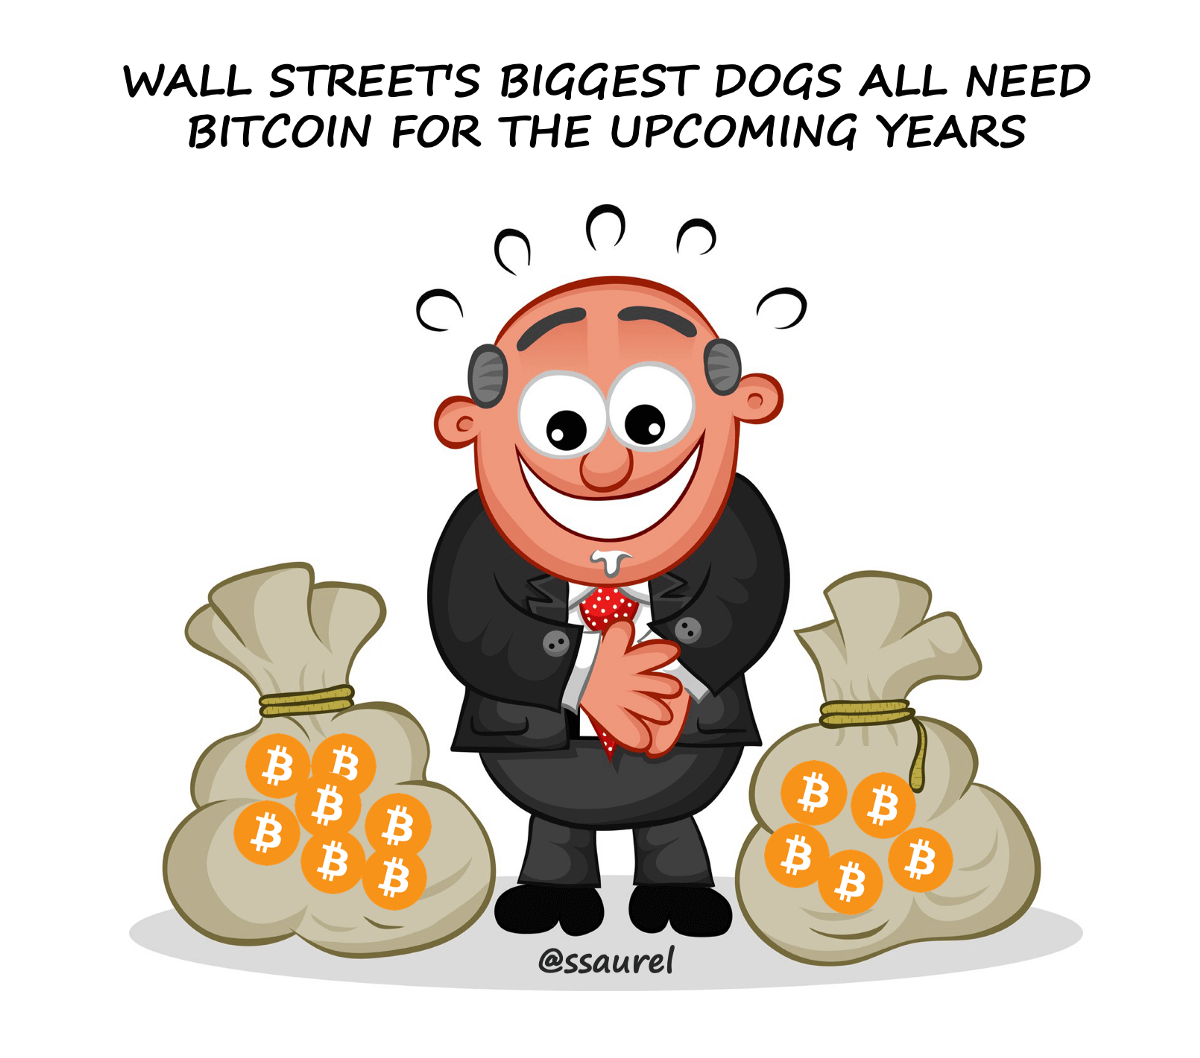 wall-streets-biggest-dogs-all-need-bitcoin-for-the-upcoming-years